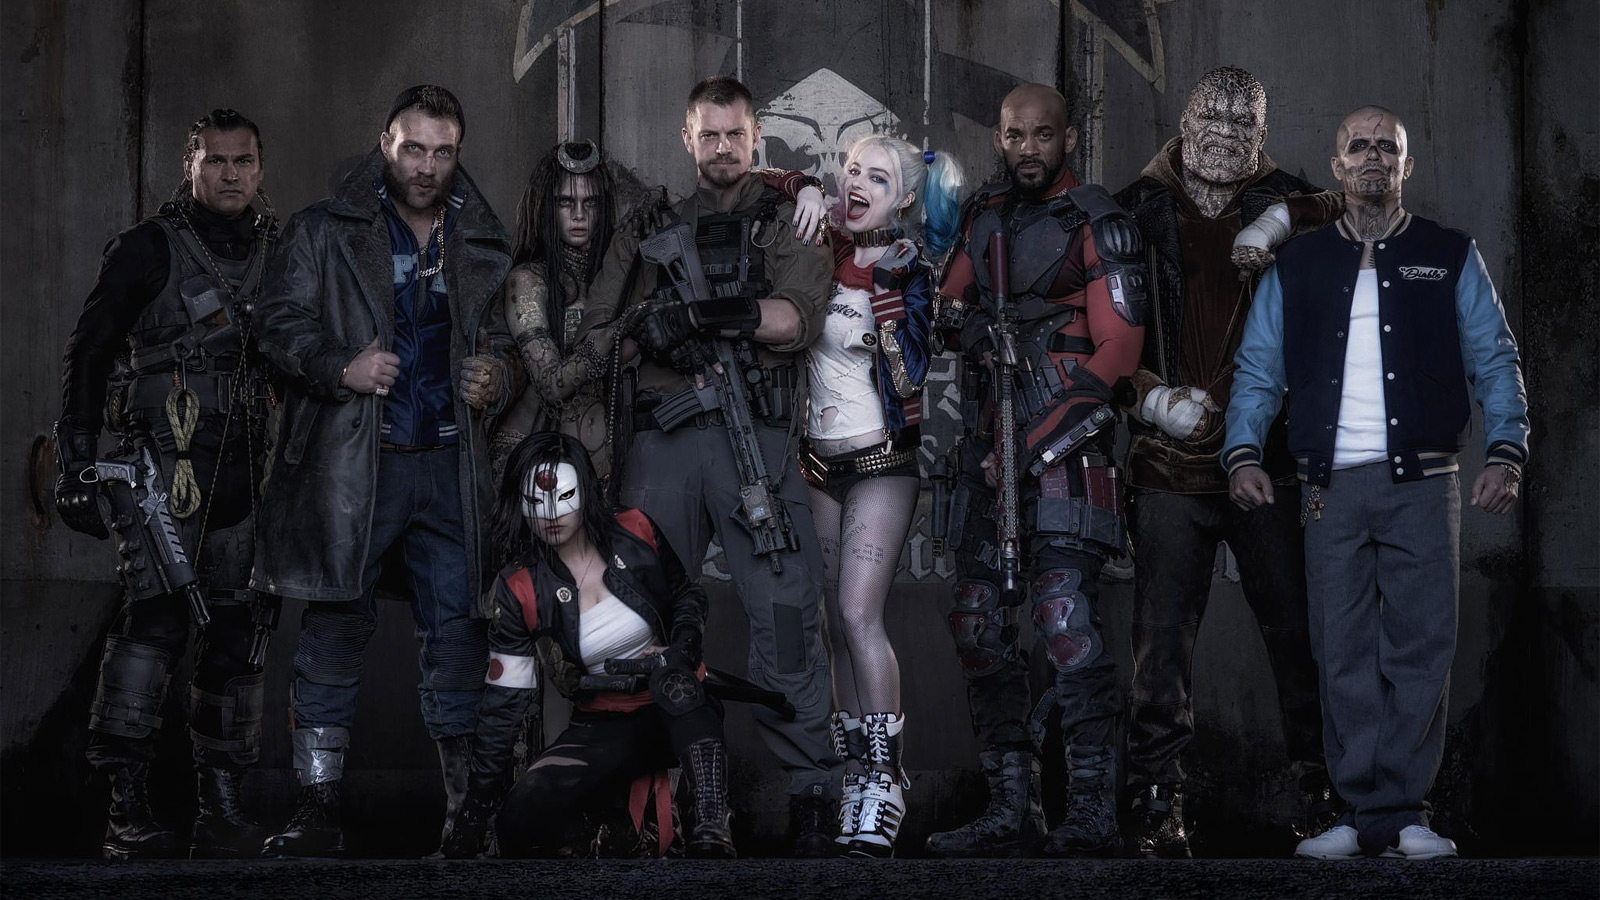 Harley Quinn co-creator Bruce Timm thinks Suicide Squad's Harley is pretty cute